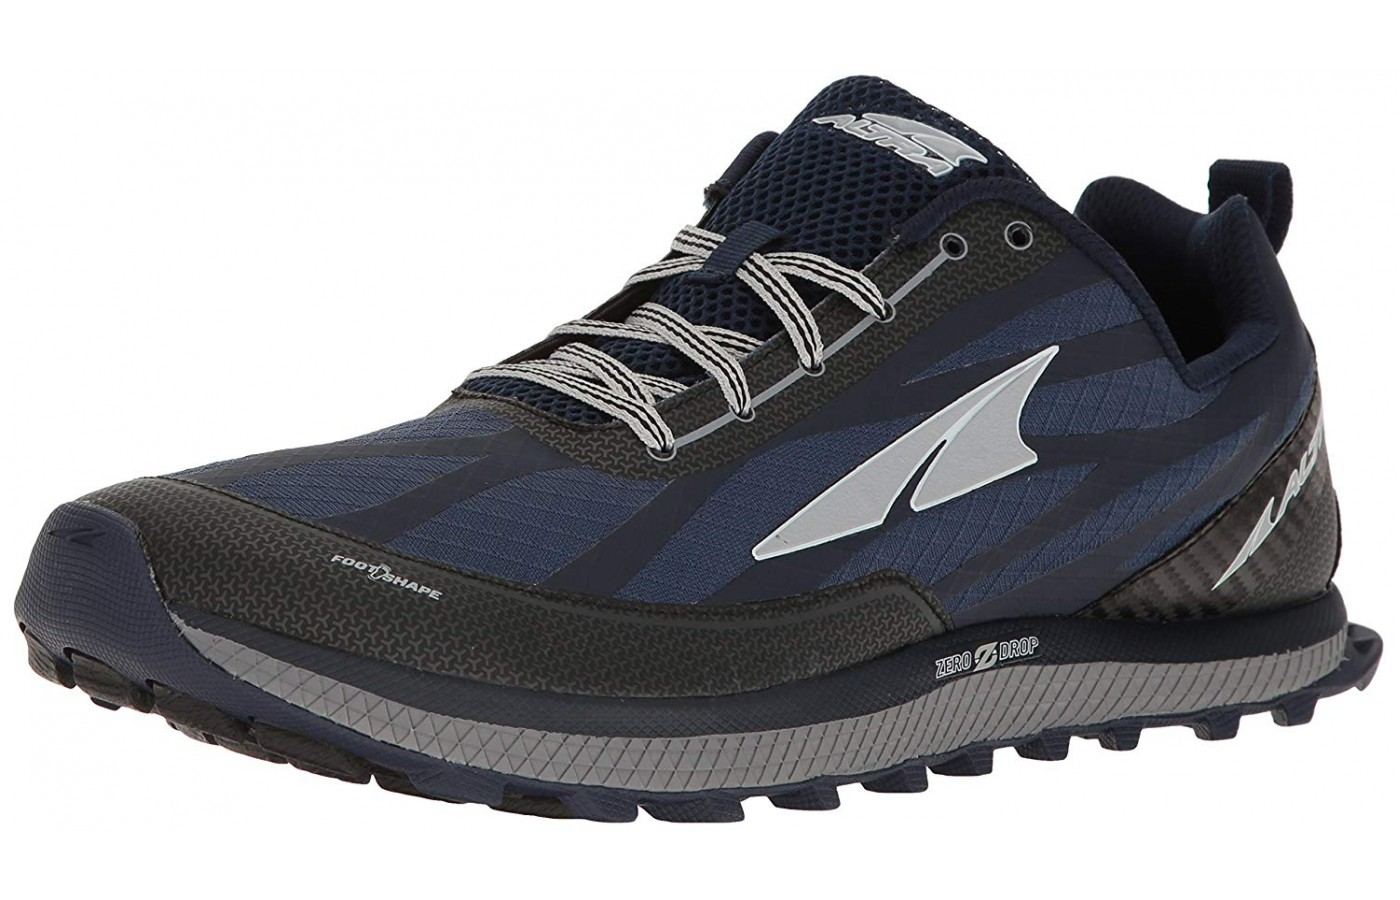 The Altra Superior 3.0 has mesh material in the upper.